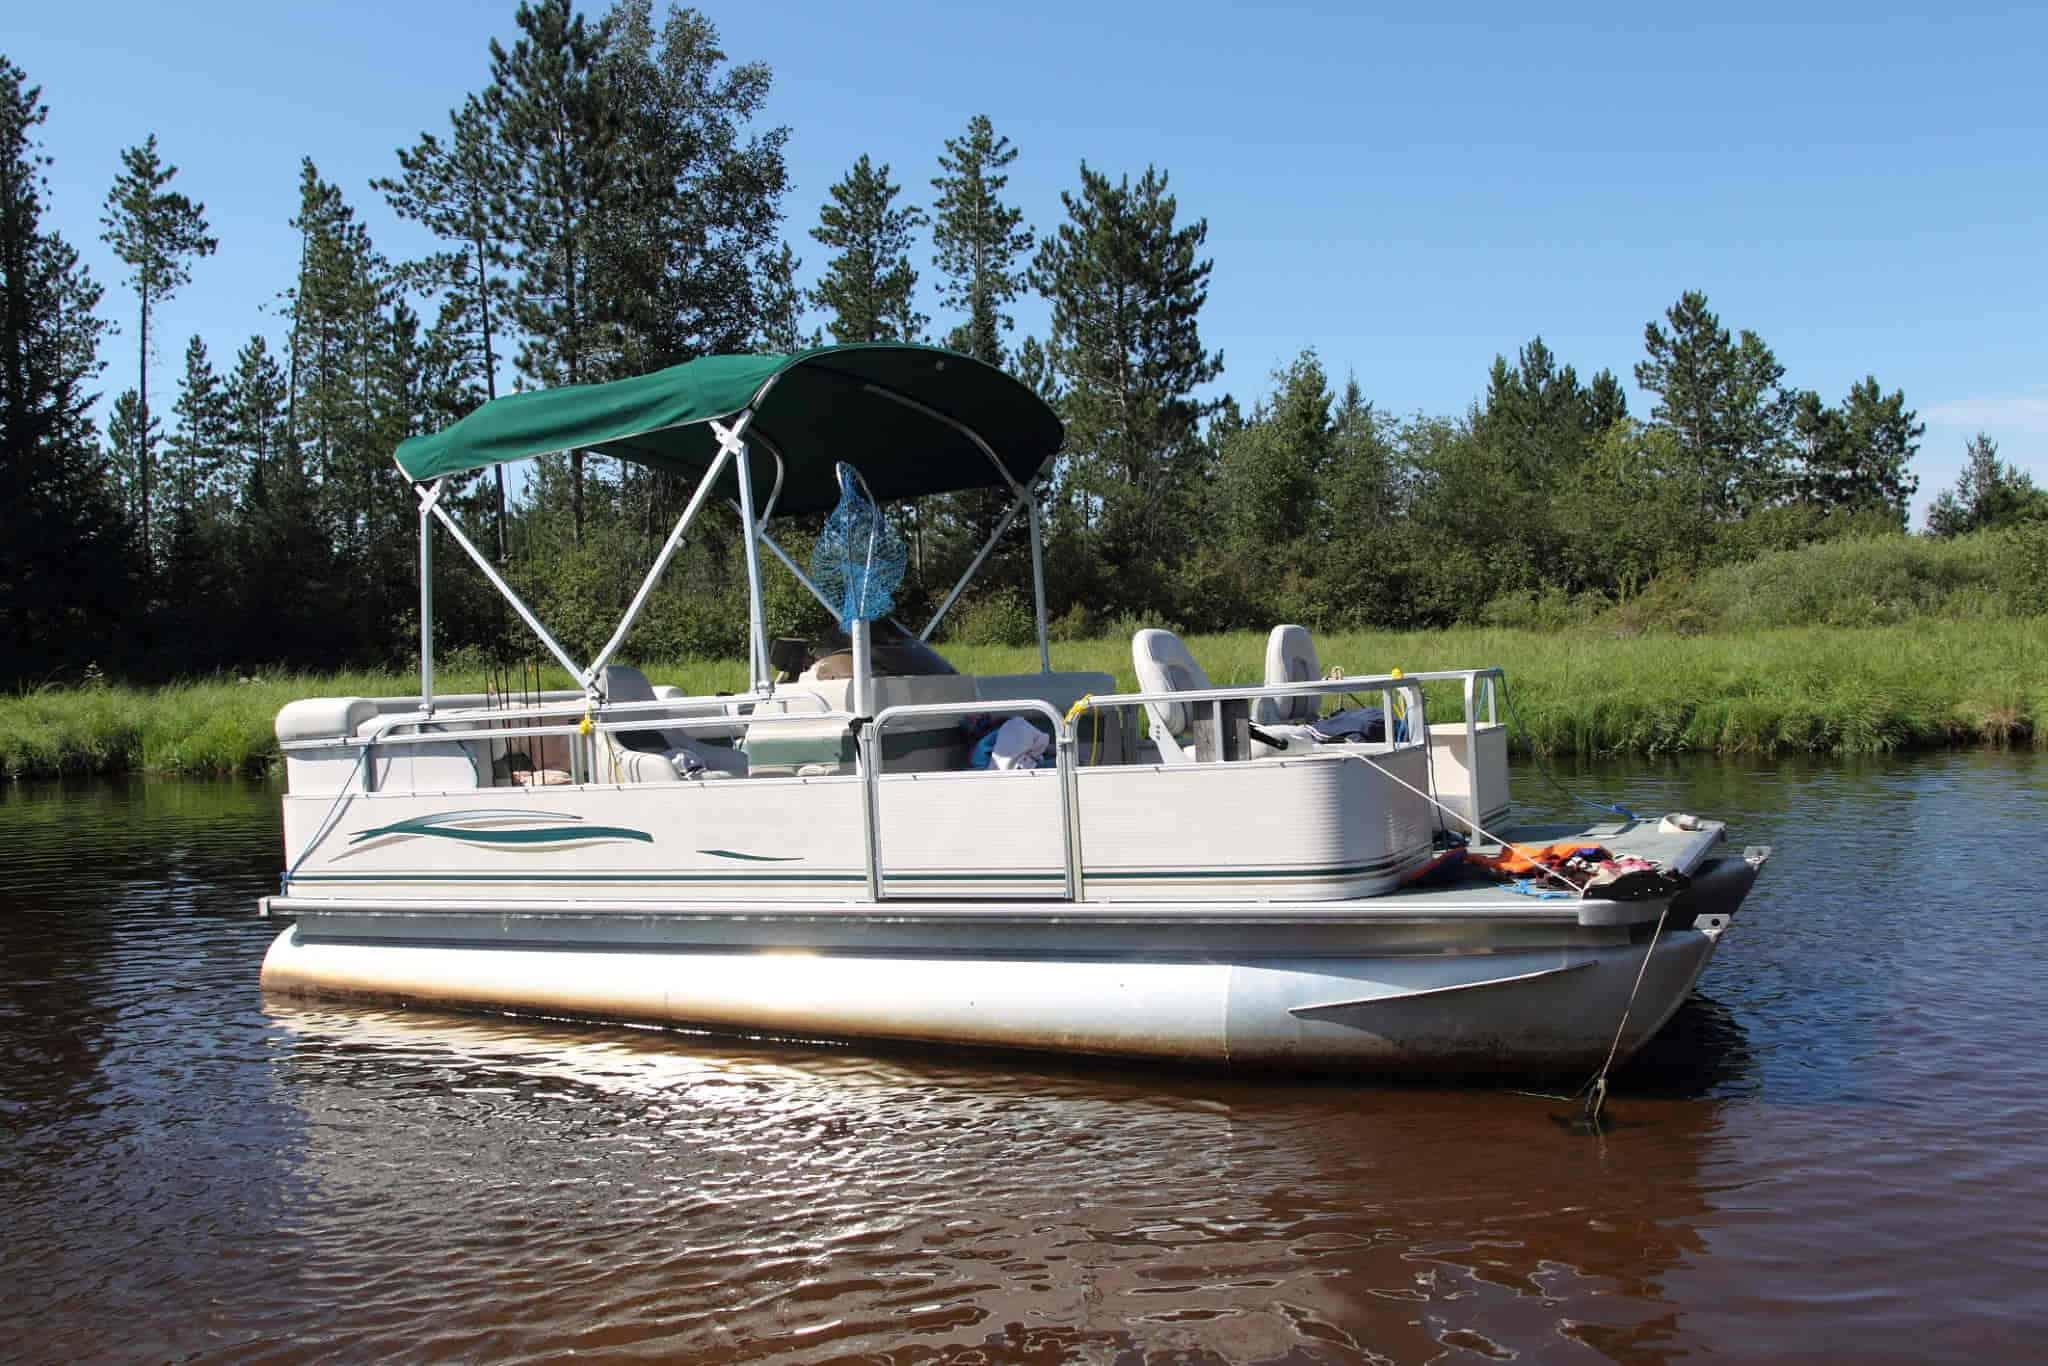 pontoon boat license - is it A requirement